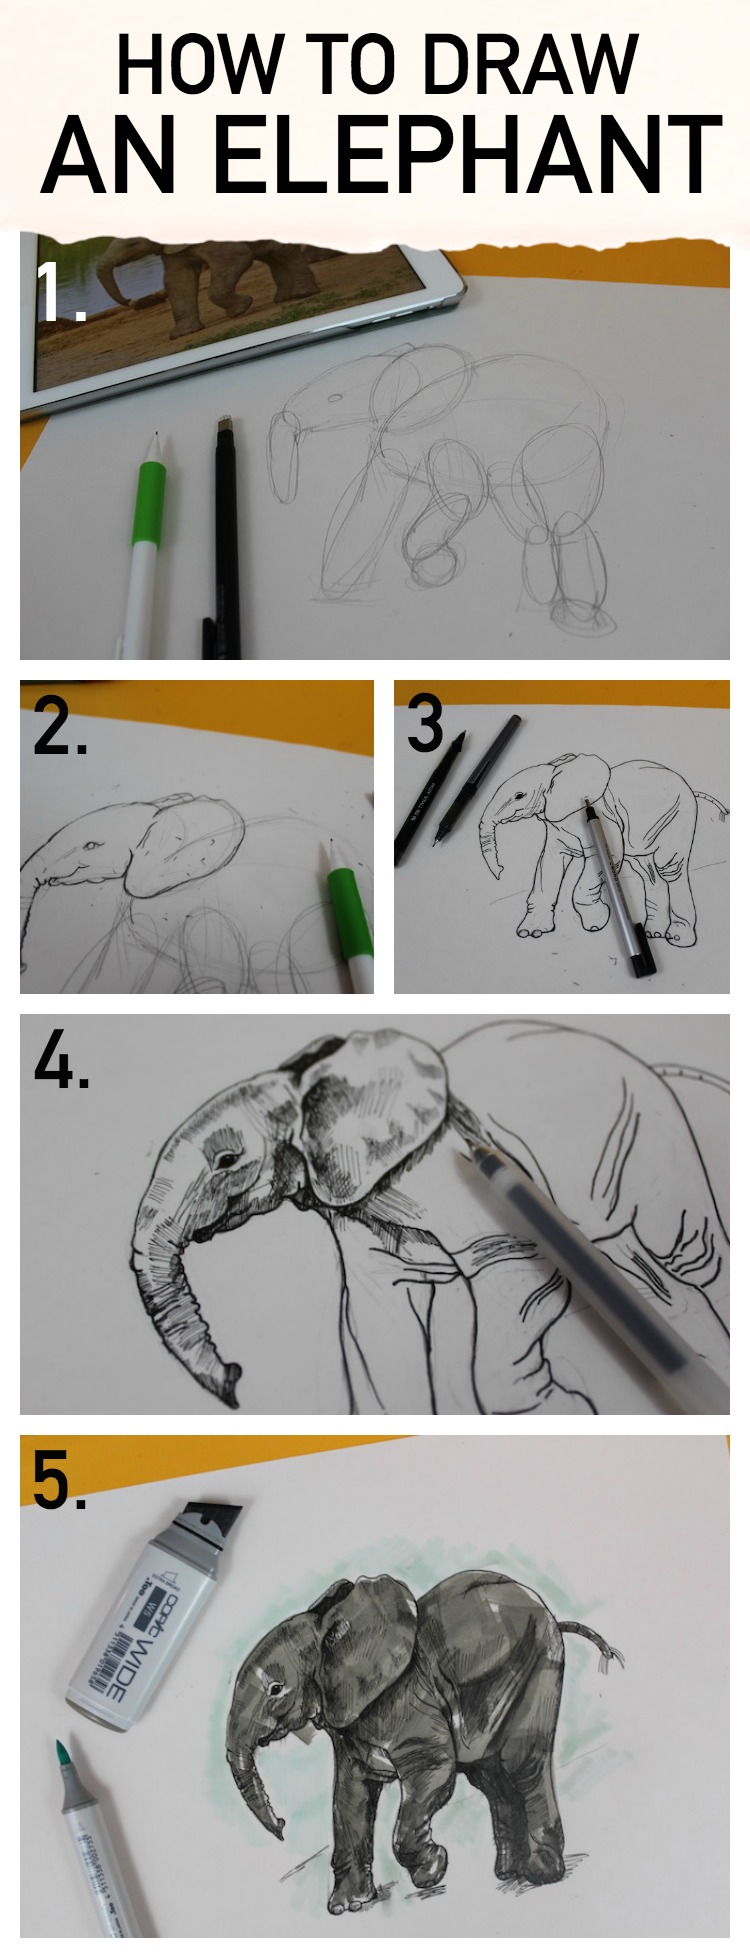 Learn how to draw an elephant with Bluprint's step-by-step tutorial